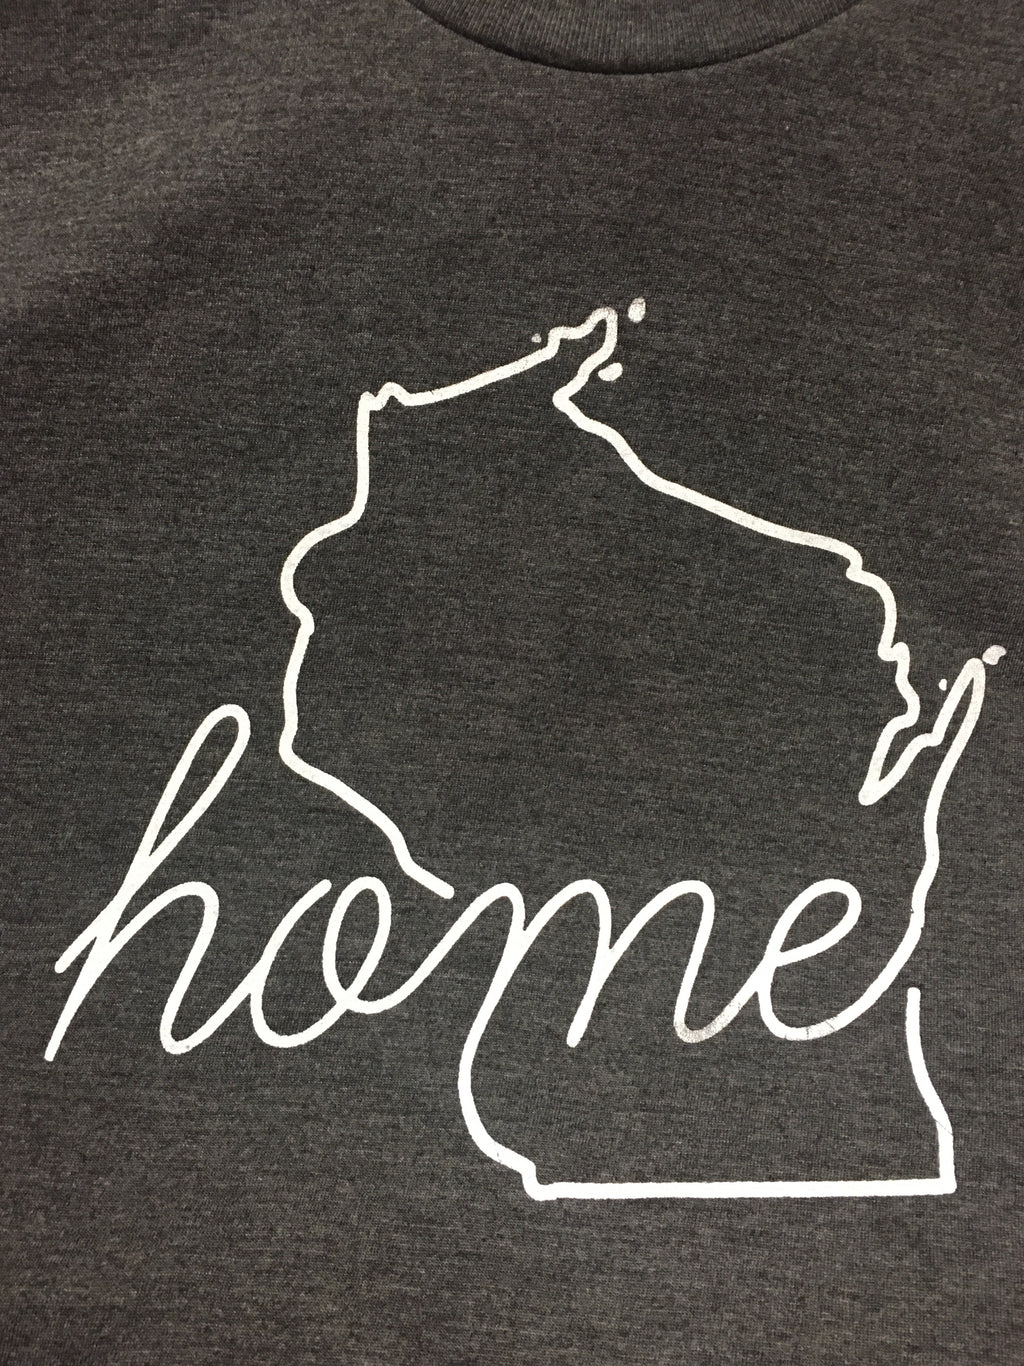 Wisconsin Home T shirt